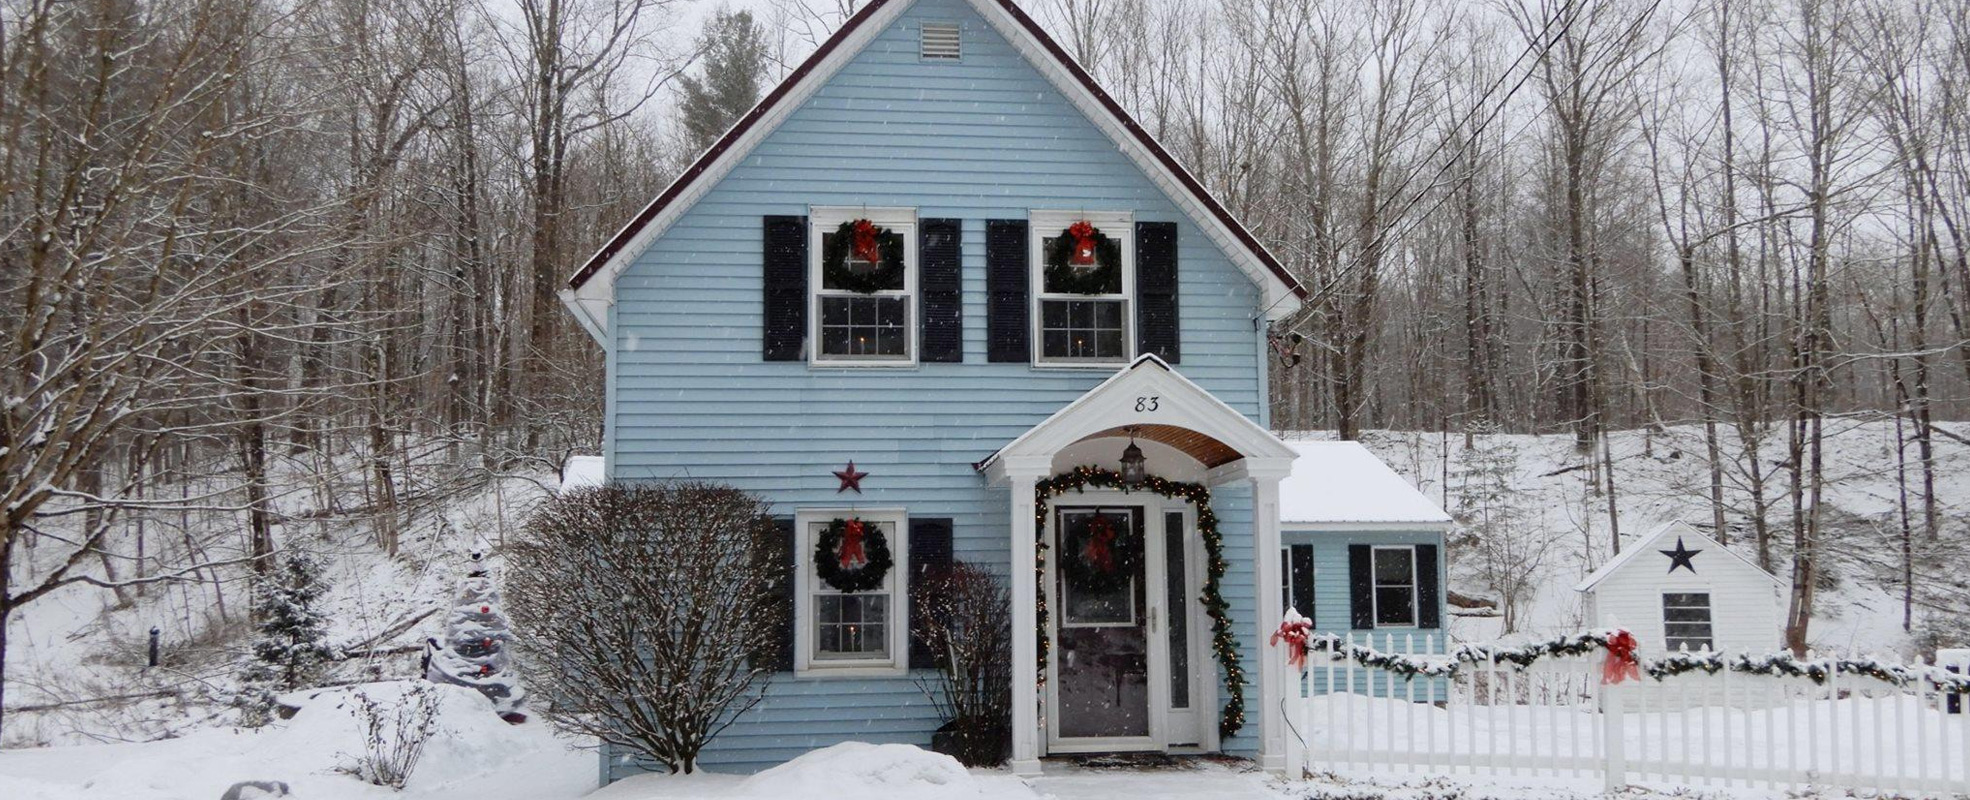 Featured: 83 Powder Mill Rd Pittstown, NY 12185